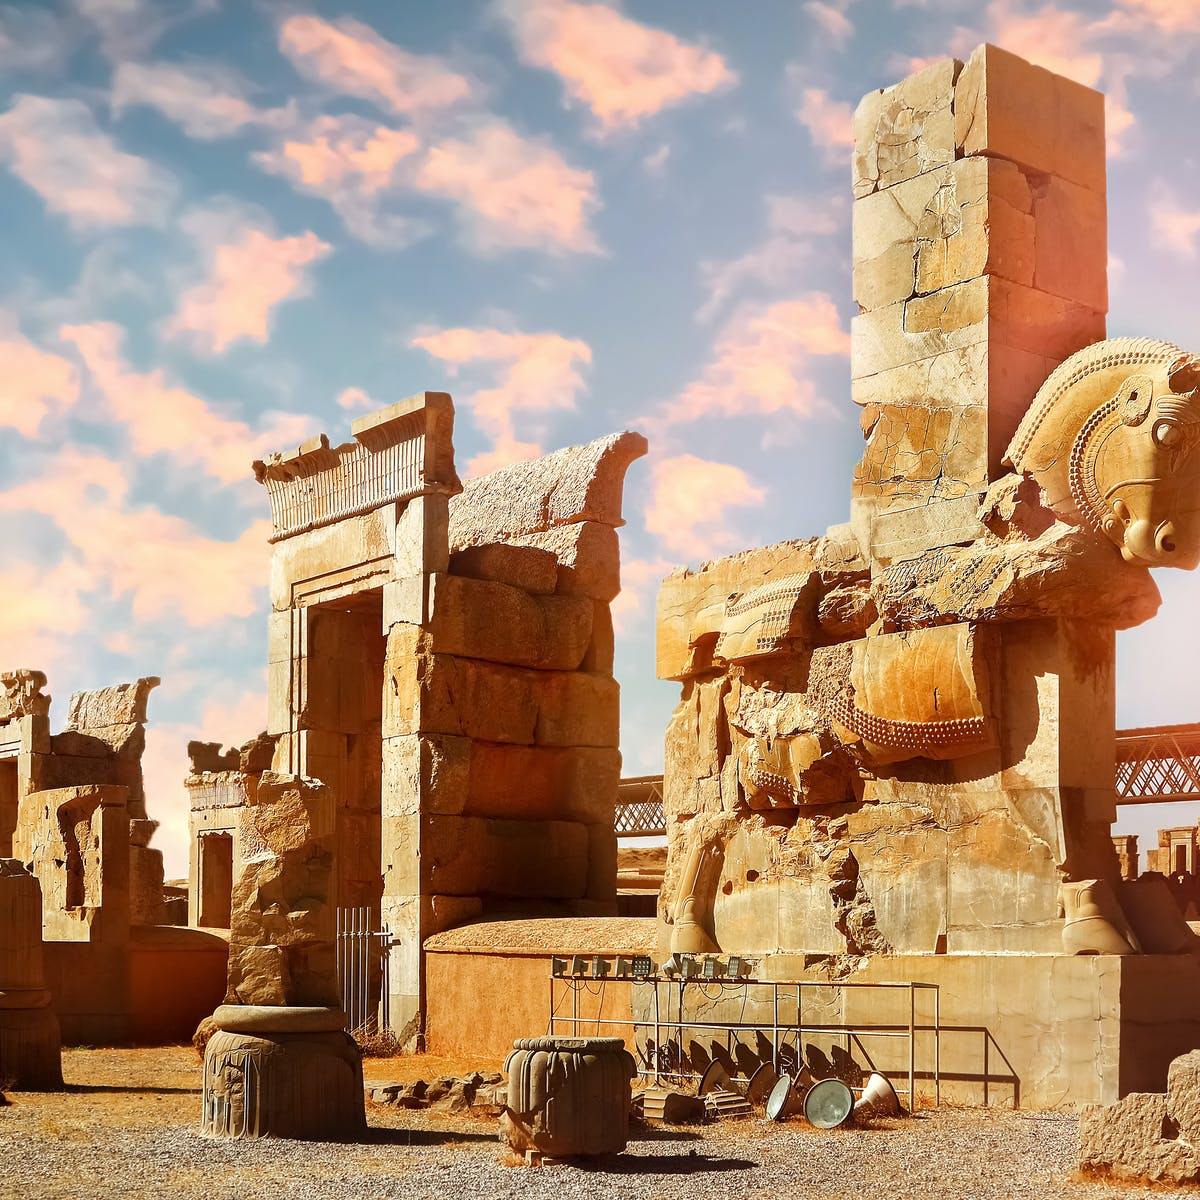 Iran S Cultural Heritage Reflects The Grandeur And Beauty Of The Golden Age Of The Persian Empire